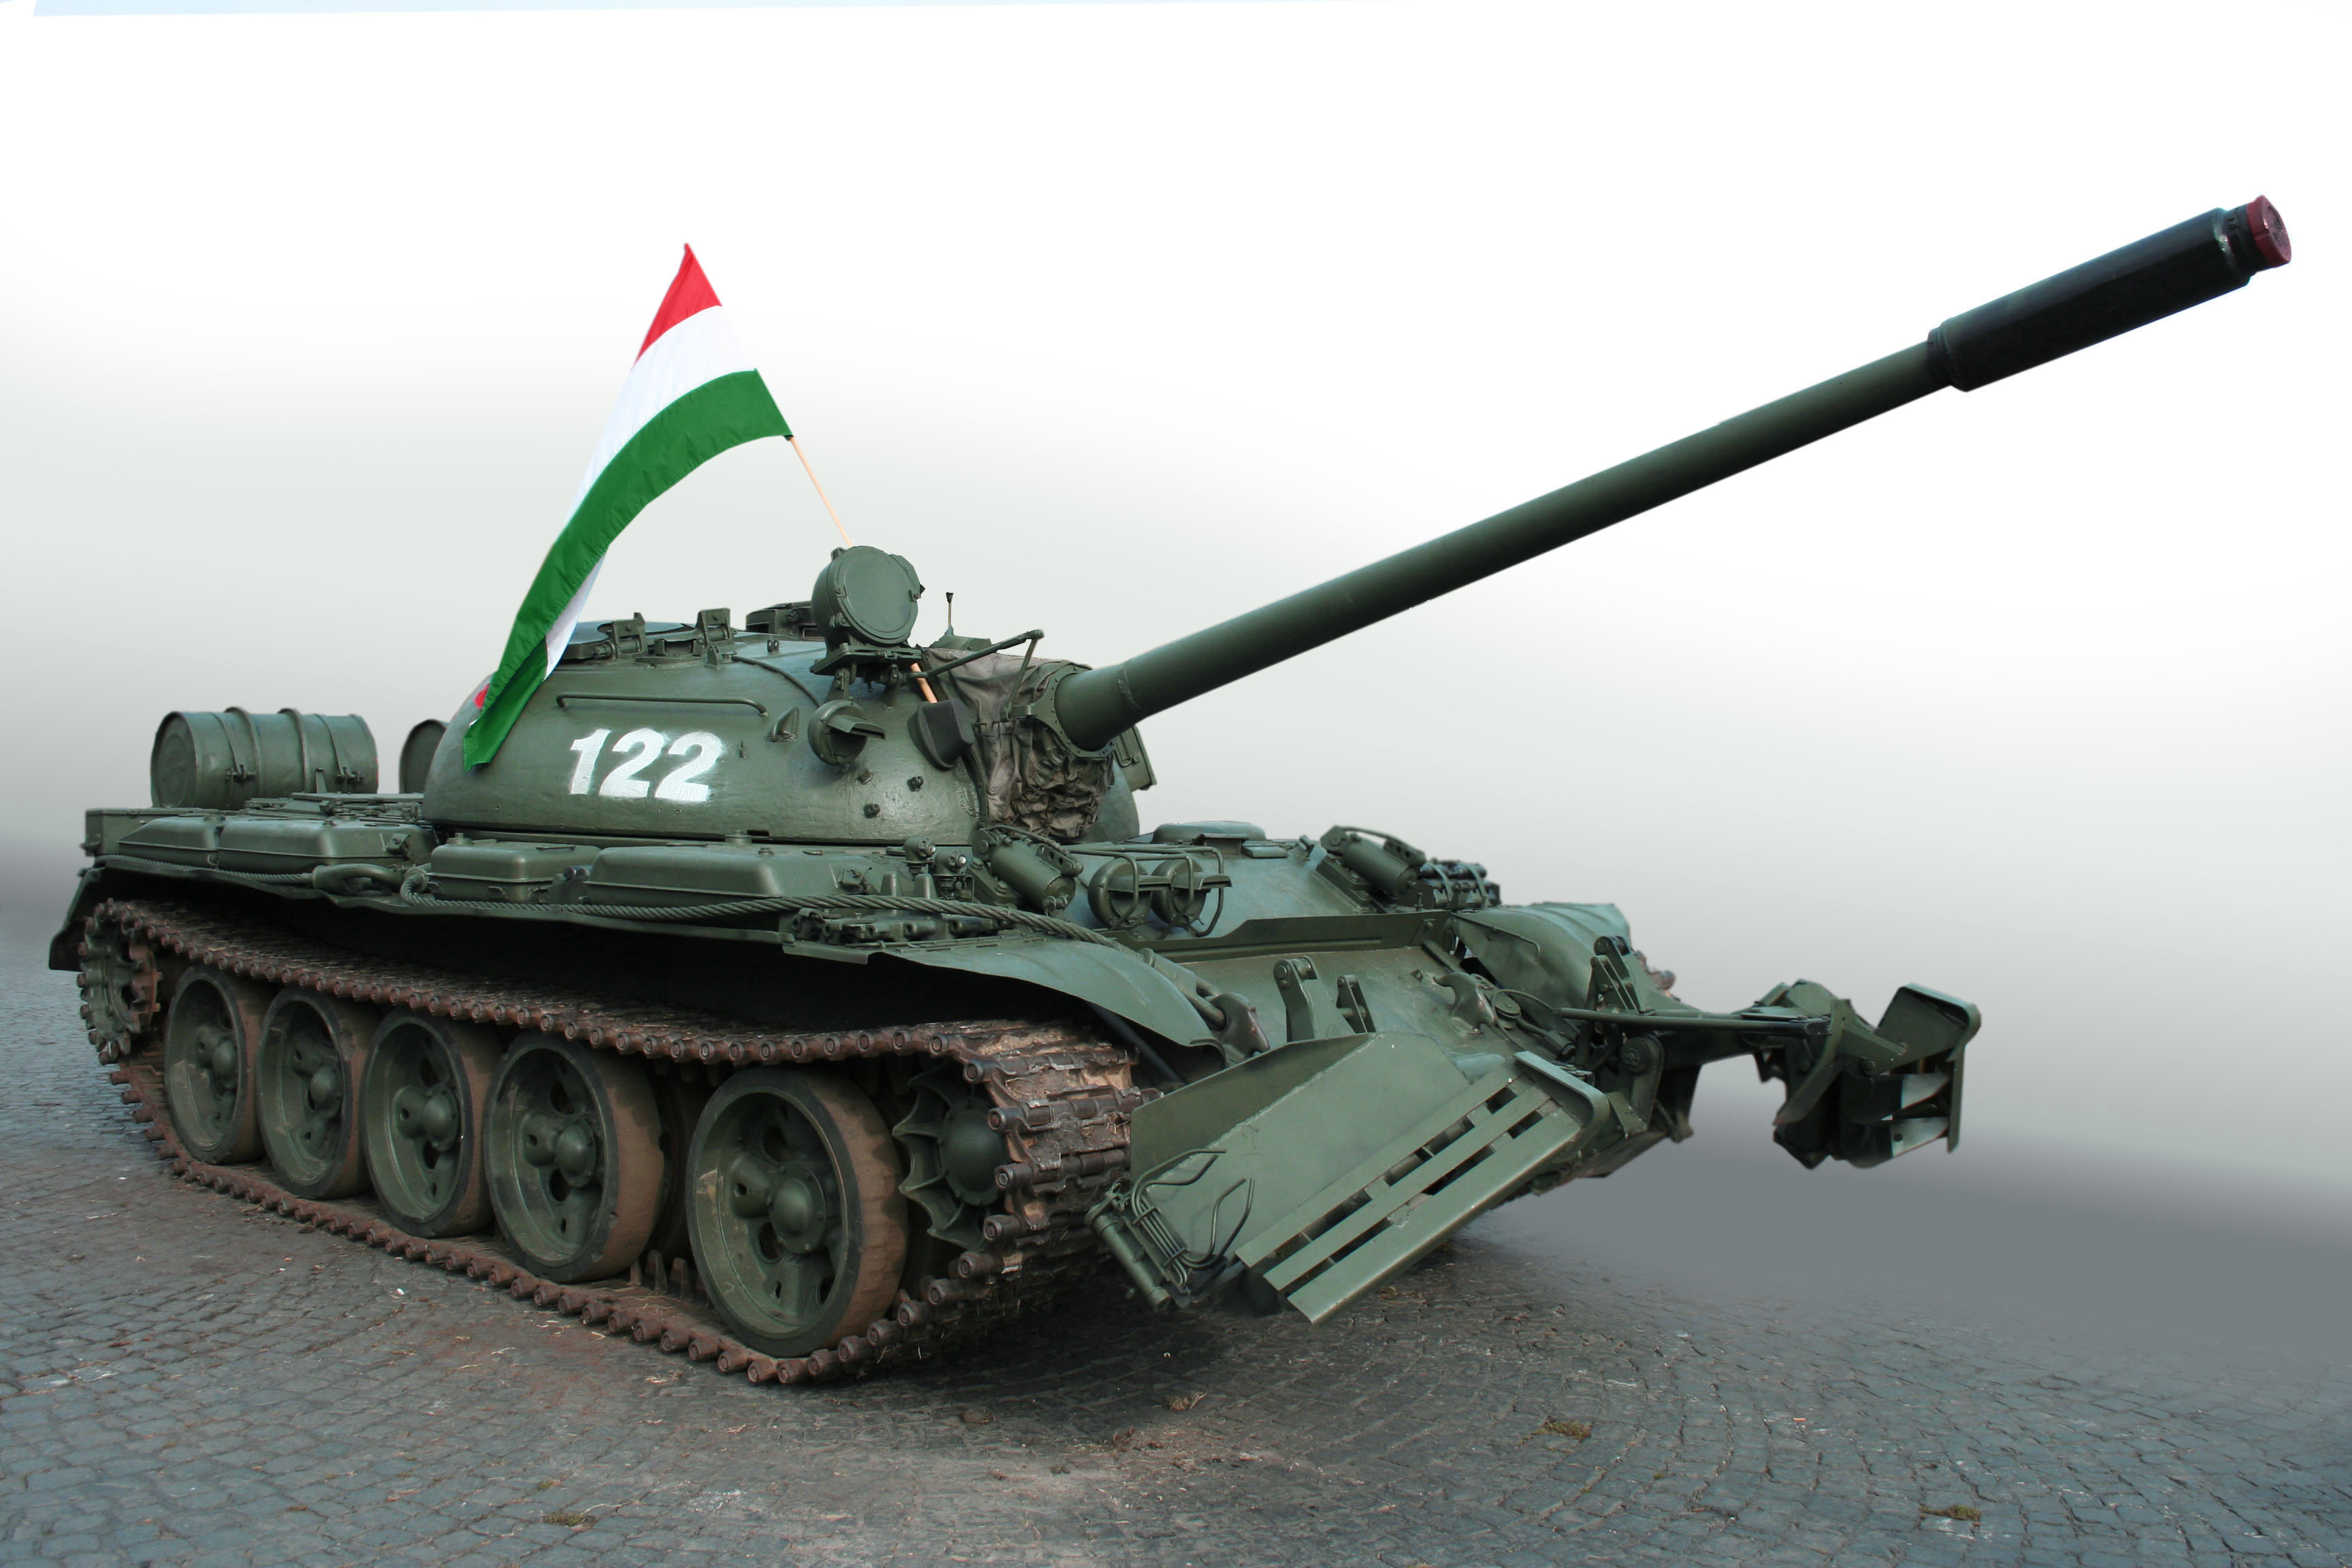 Hungarian Revolution, October 1956 - Sovjet tank with Hungarian flag